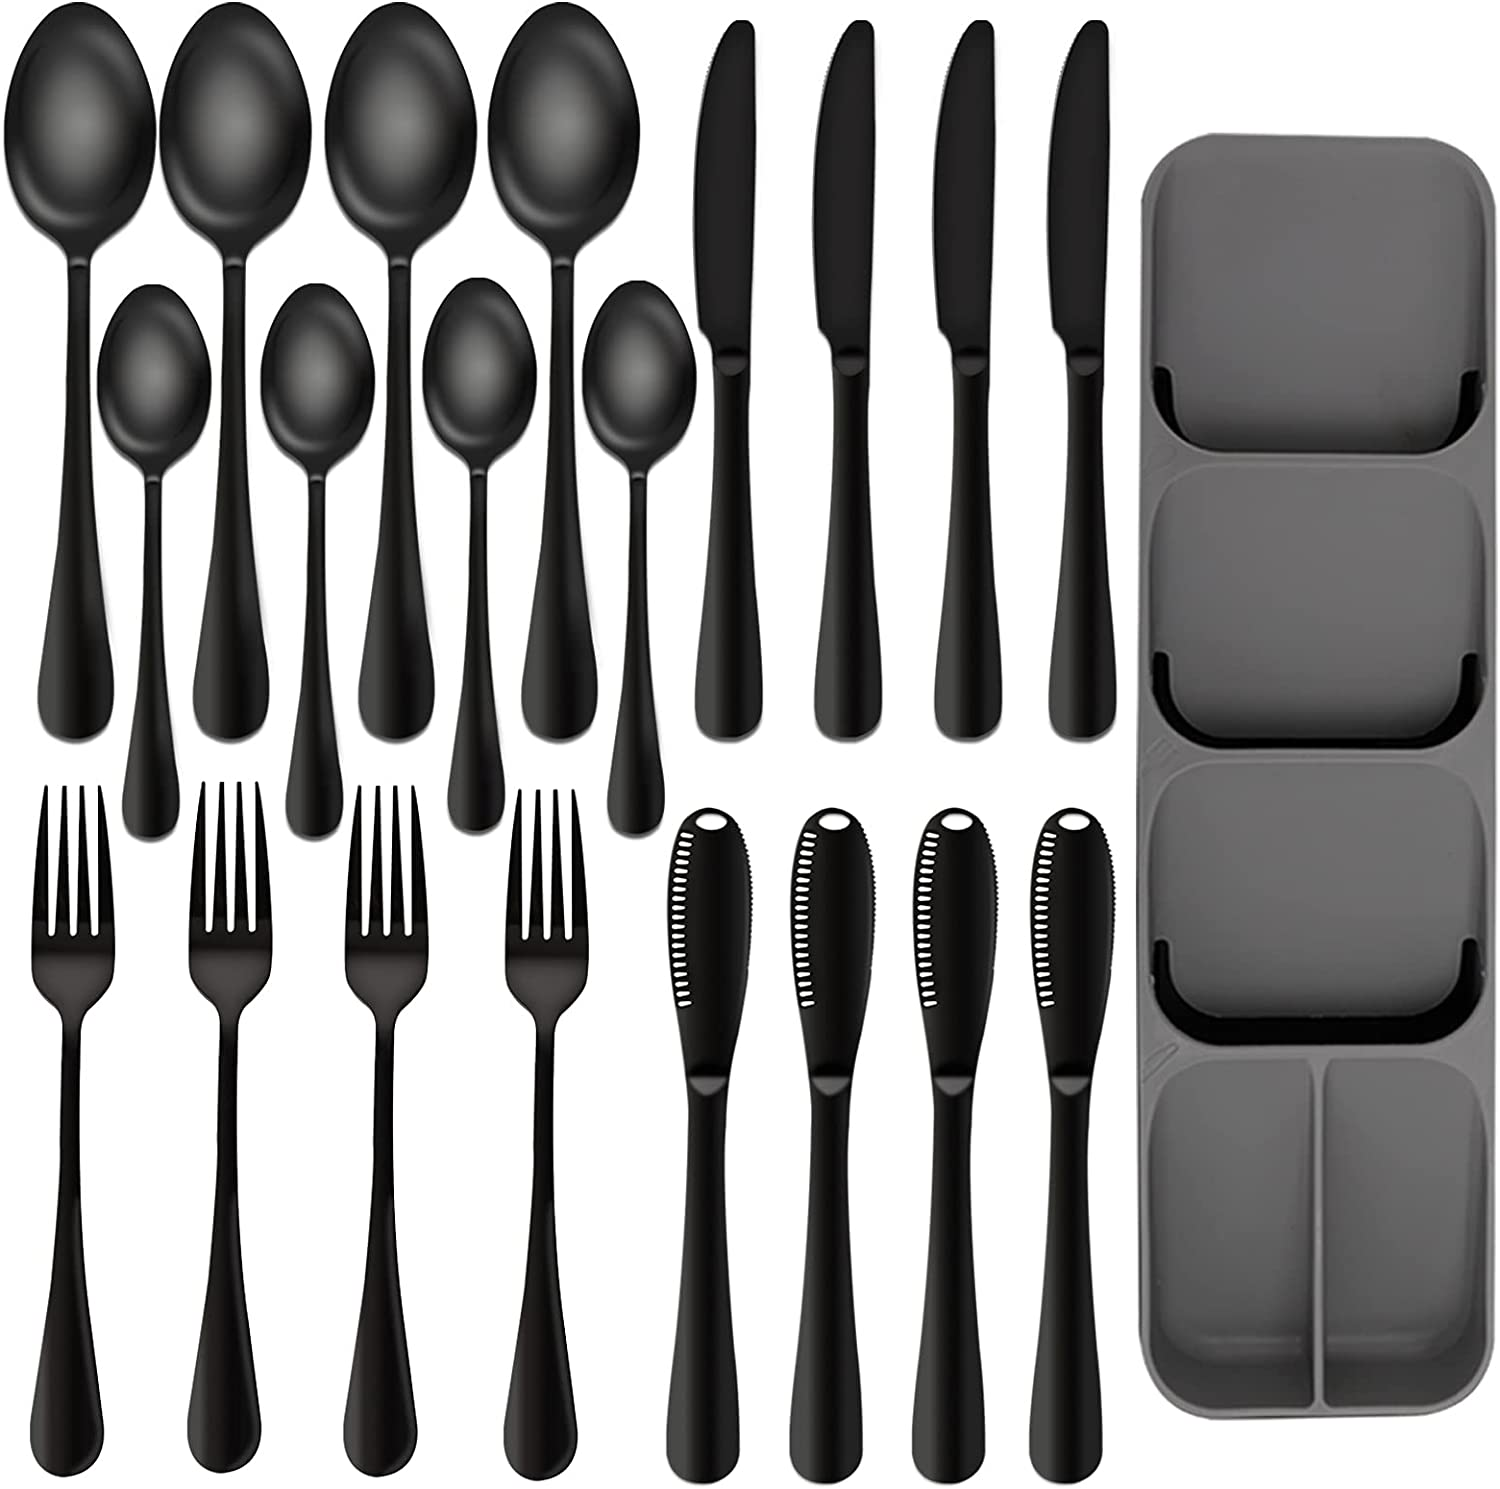 20-Piece Black Silverware Set Excellence with Tray Ansukow 5 ☆ popular 8 18 S Stainless